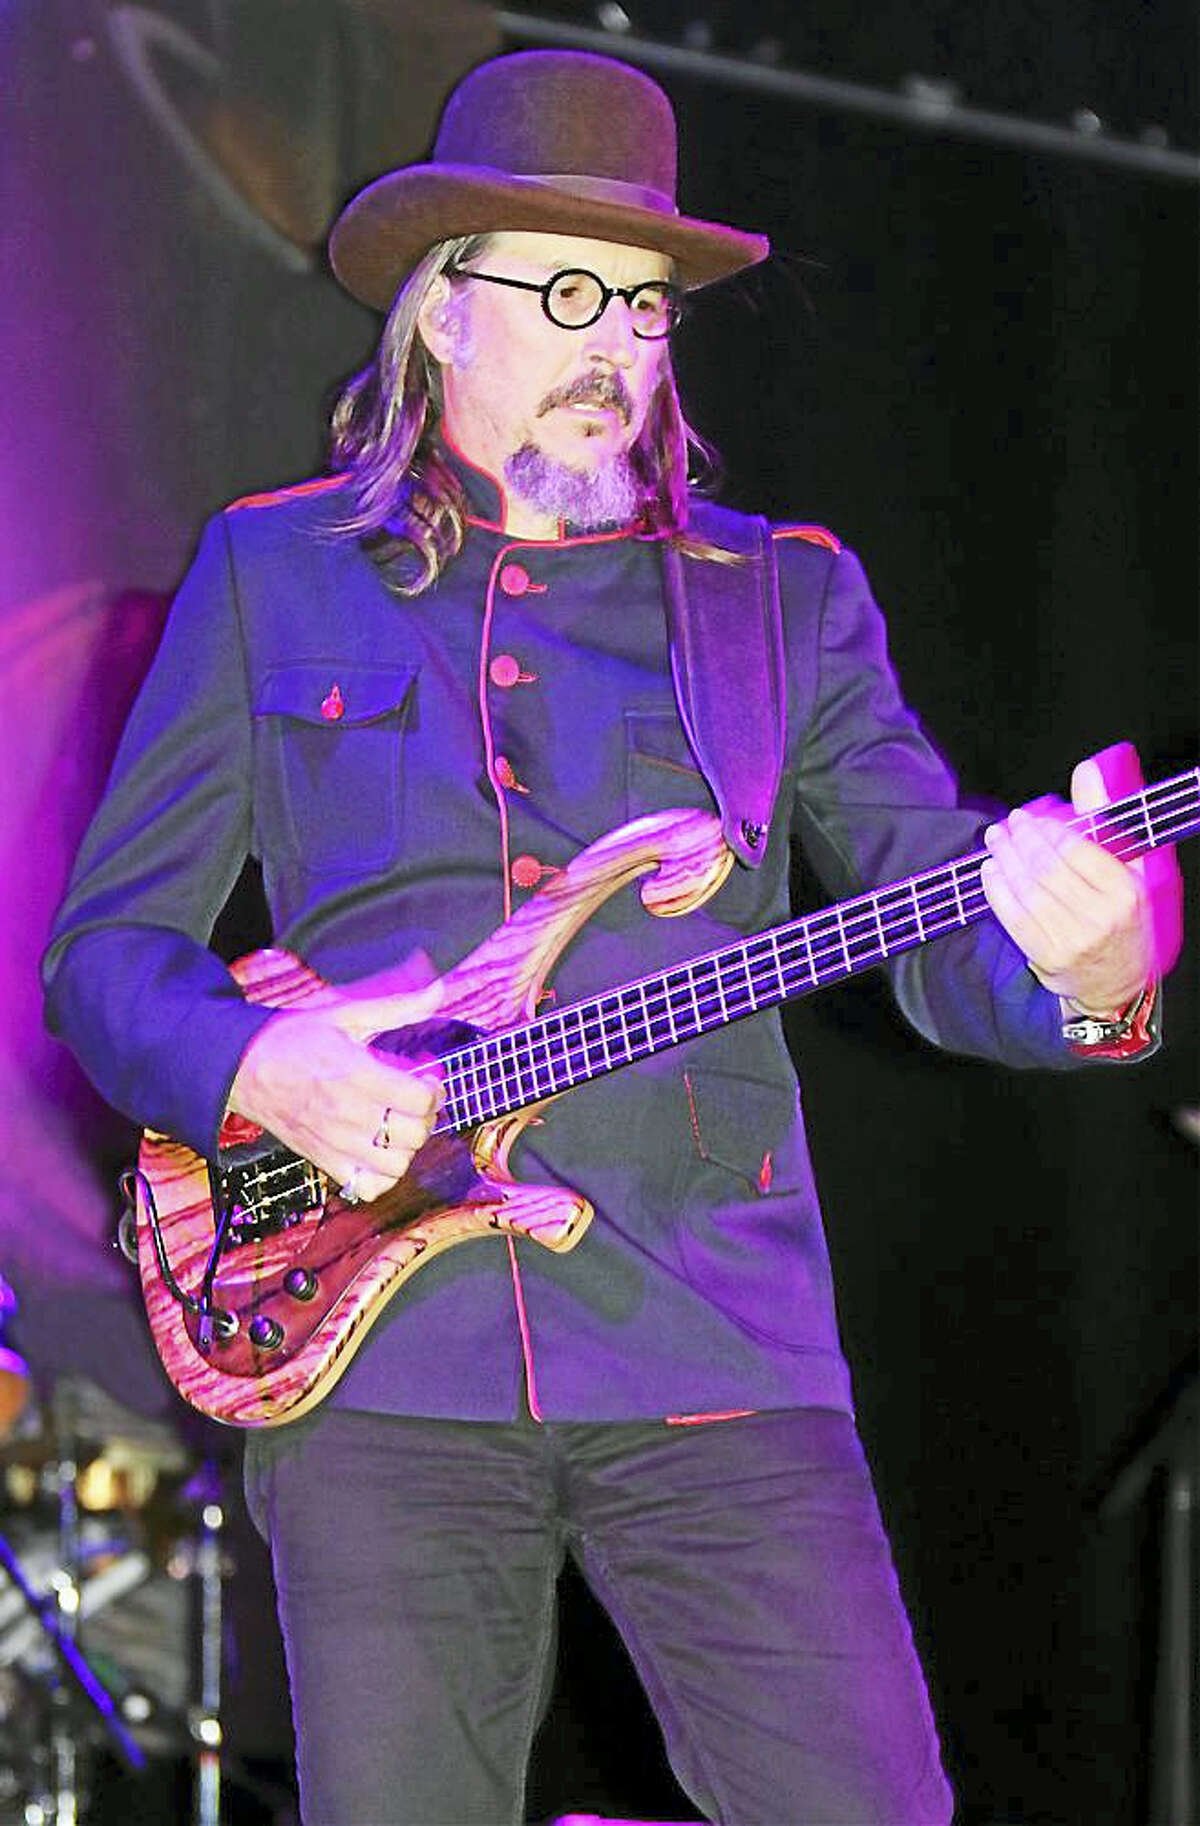 Photo by John AtashianBass player, singer and songwriter Les Claypool, of the rock band Primus, performs at the College Street Music Hall in New Haven Aug. 26 with his latest band, the Claypool Lennon Delirium. The new group, which also includes musician Sean Lennon, are now on a U.S. tour in support of their new CD, The Monolith of Phobos. To learn more about this new group, visit www.theclaypoollennondelirium.com.